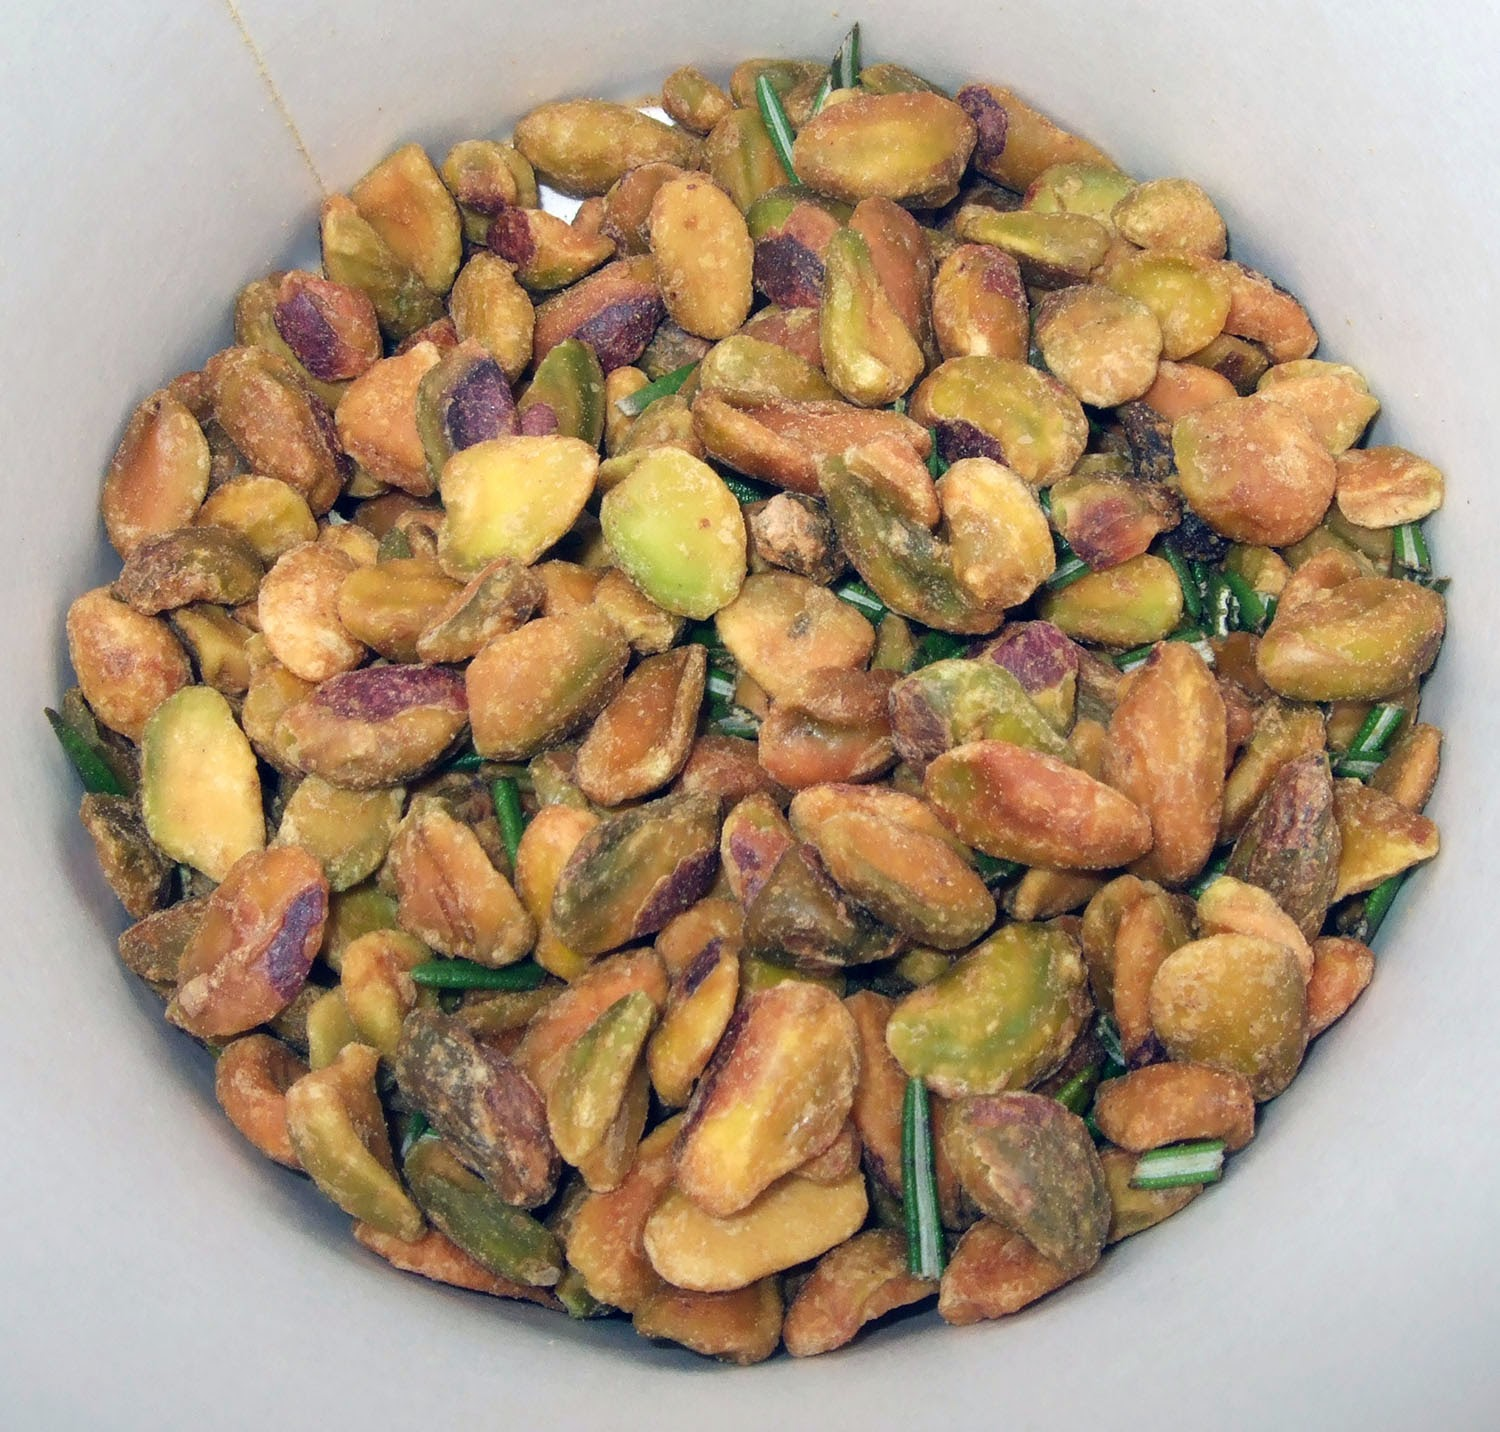 Pistachios and rosemary in container.